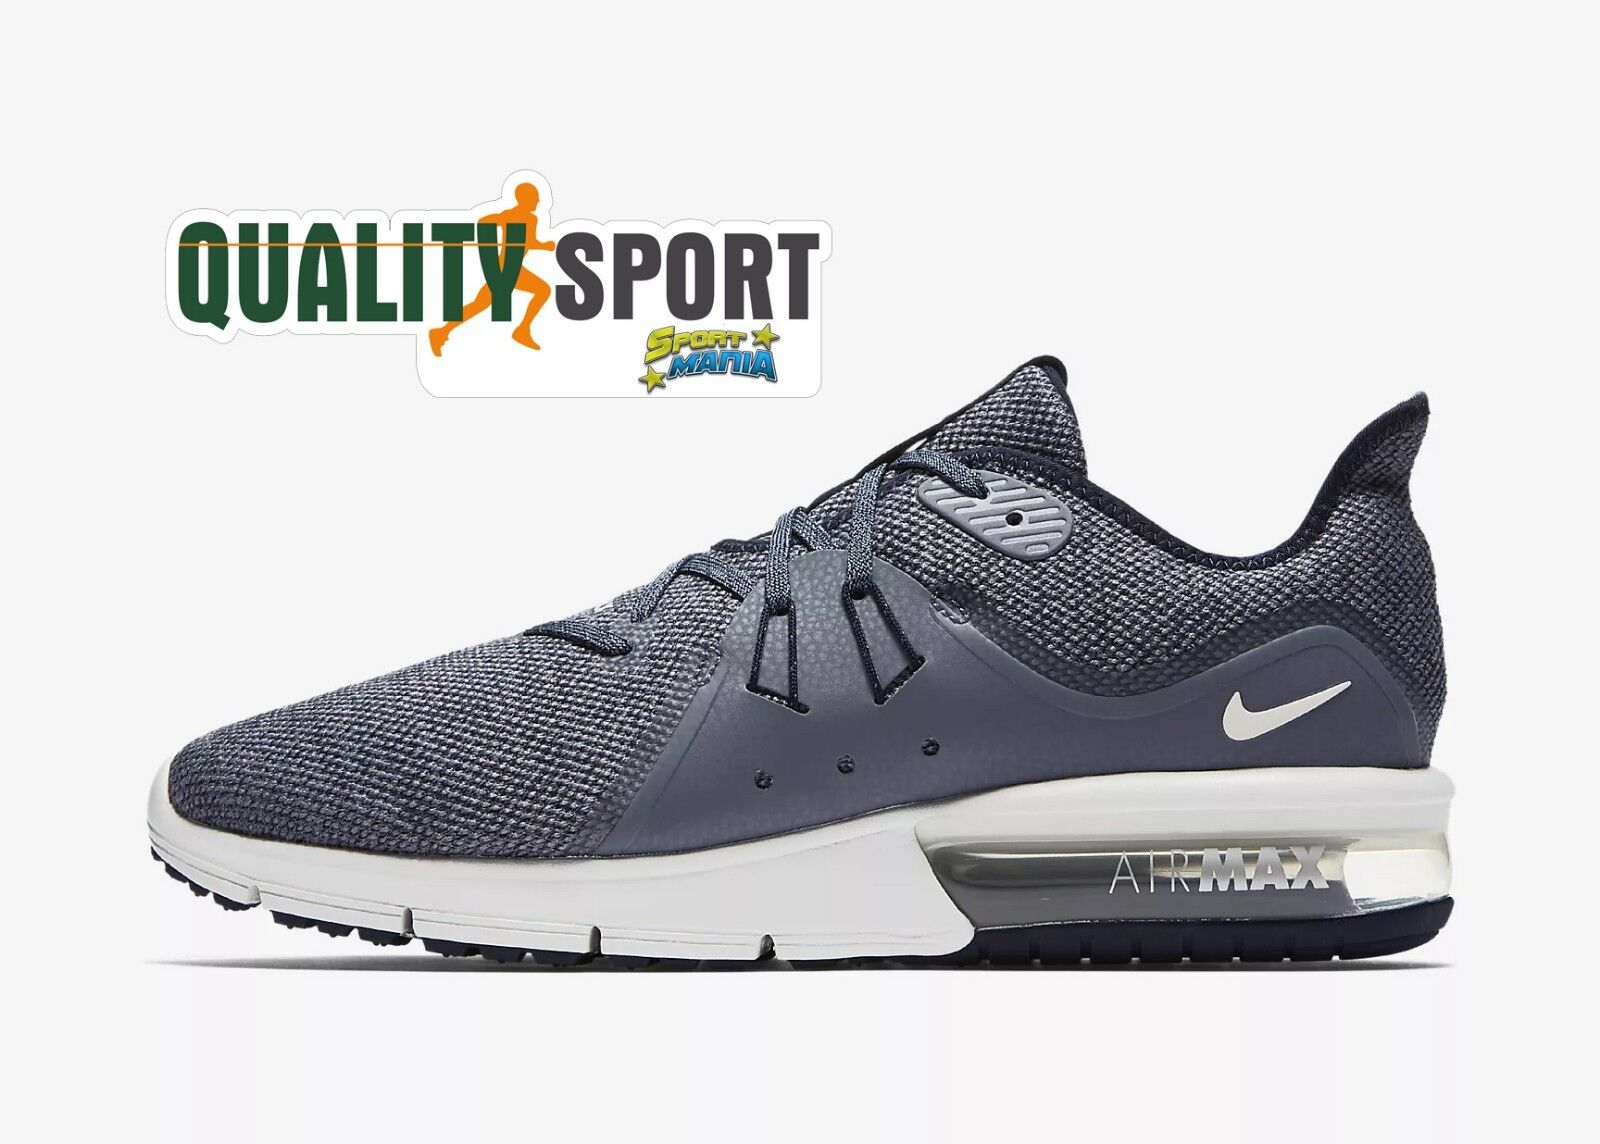 Nike Air Max Sequent 3 Jeans shoes shoes men Sportive Sneakers 921694 402